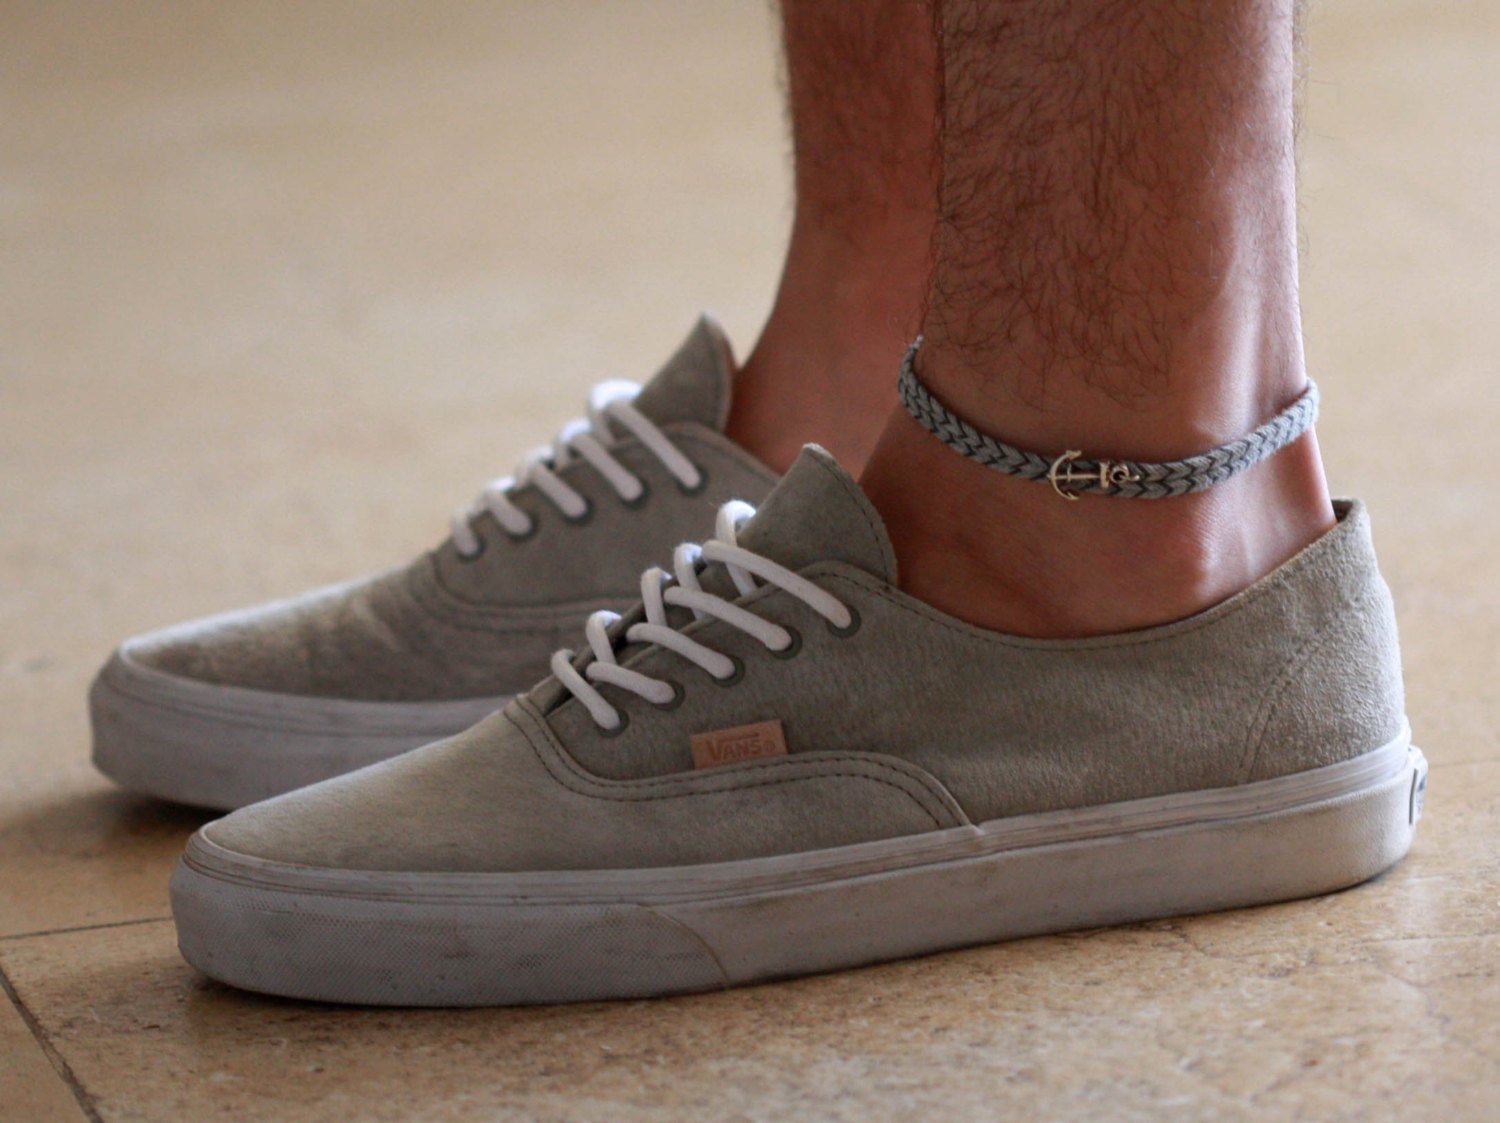 trend understated popsugar bracelets fashion anklet delicate butterfly you style for guys ankle